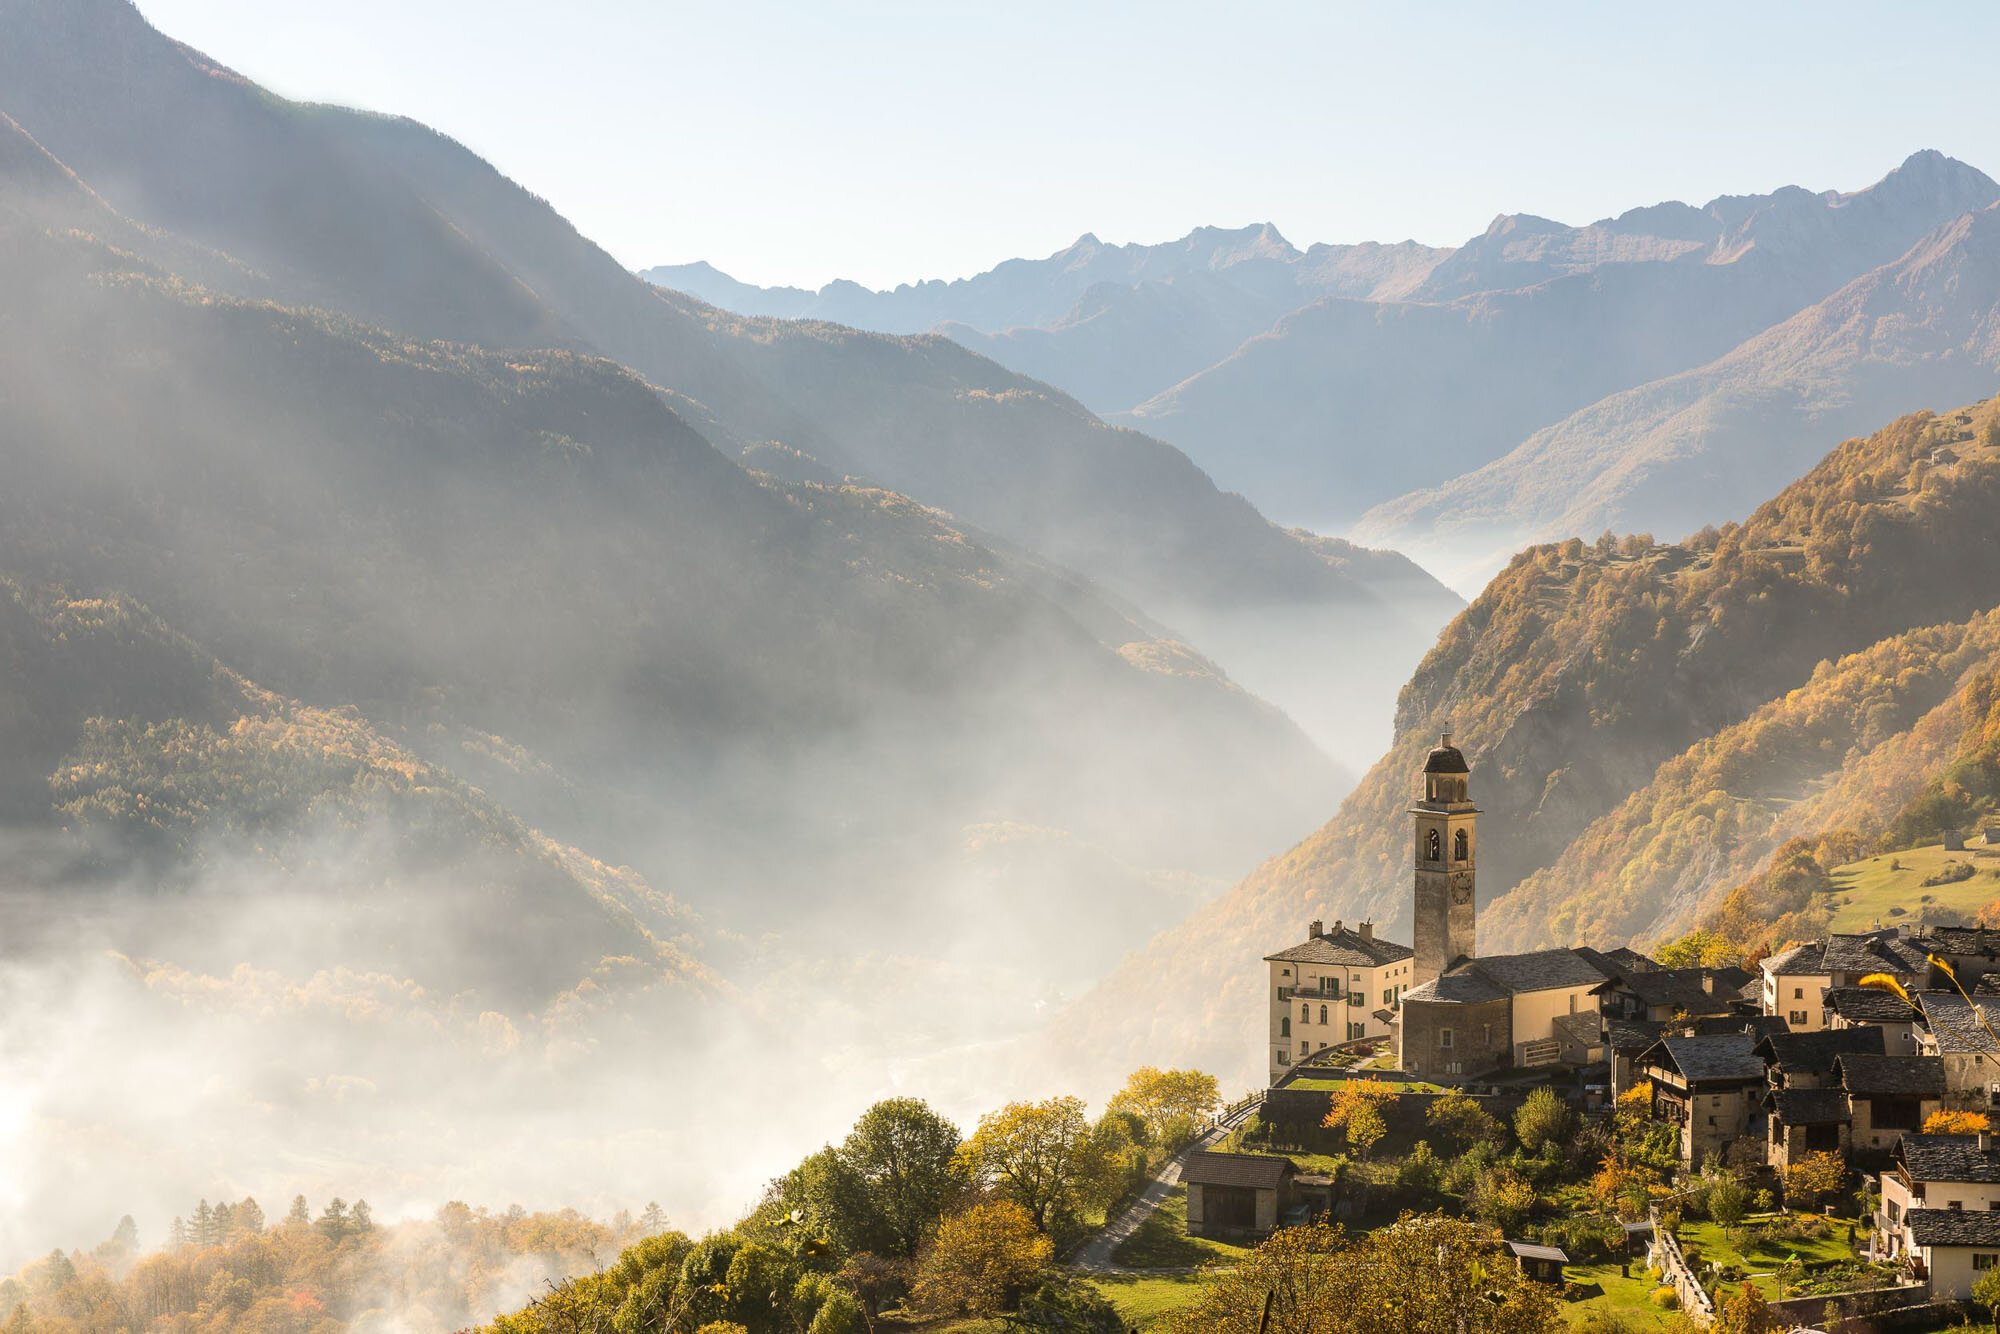 Smoke hangs over Soglio in the Bergell, as during the chestnut harvest the leaves and the empty chestnut shells are burned. Copyright by: Switzerland Tourism